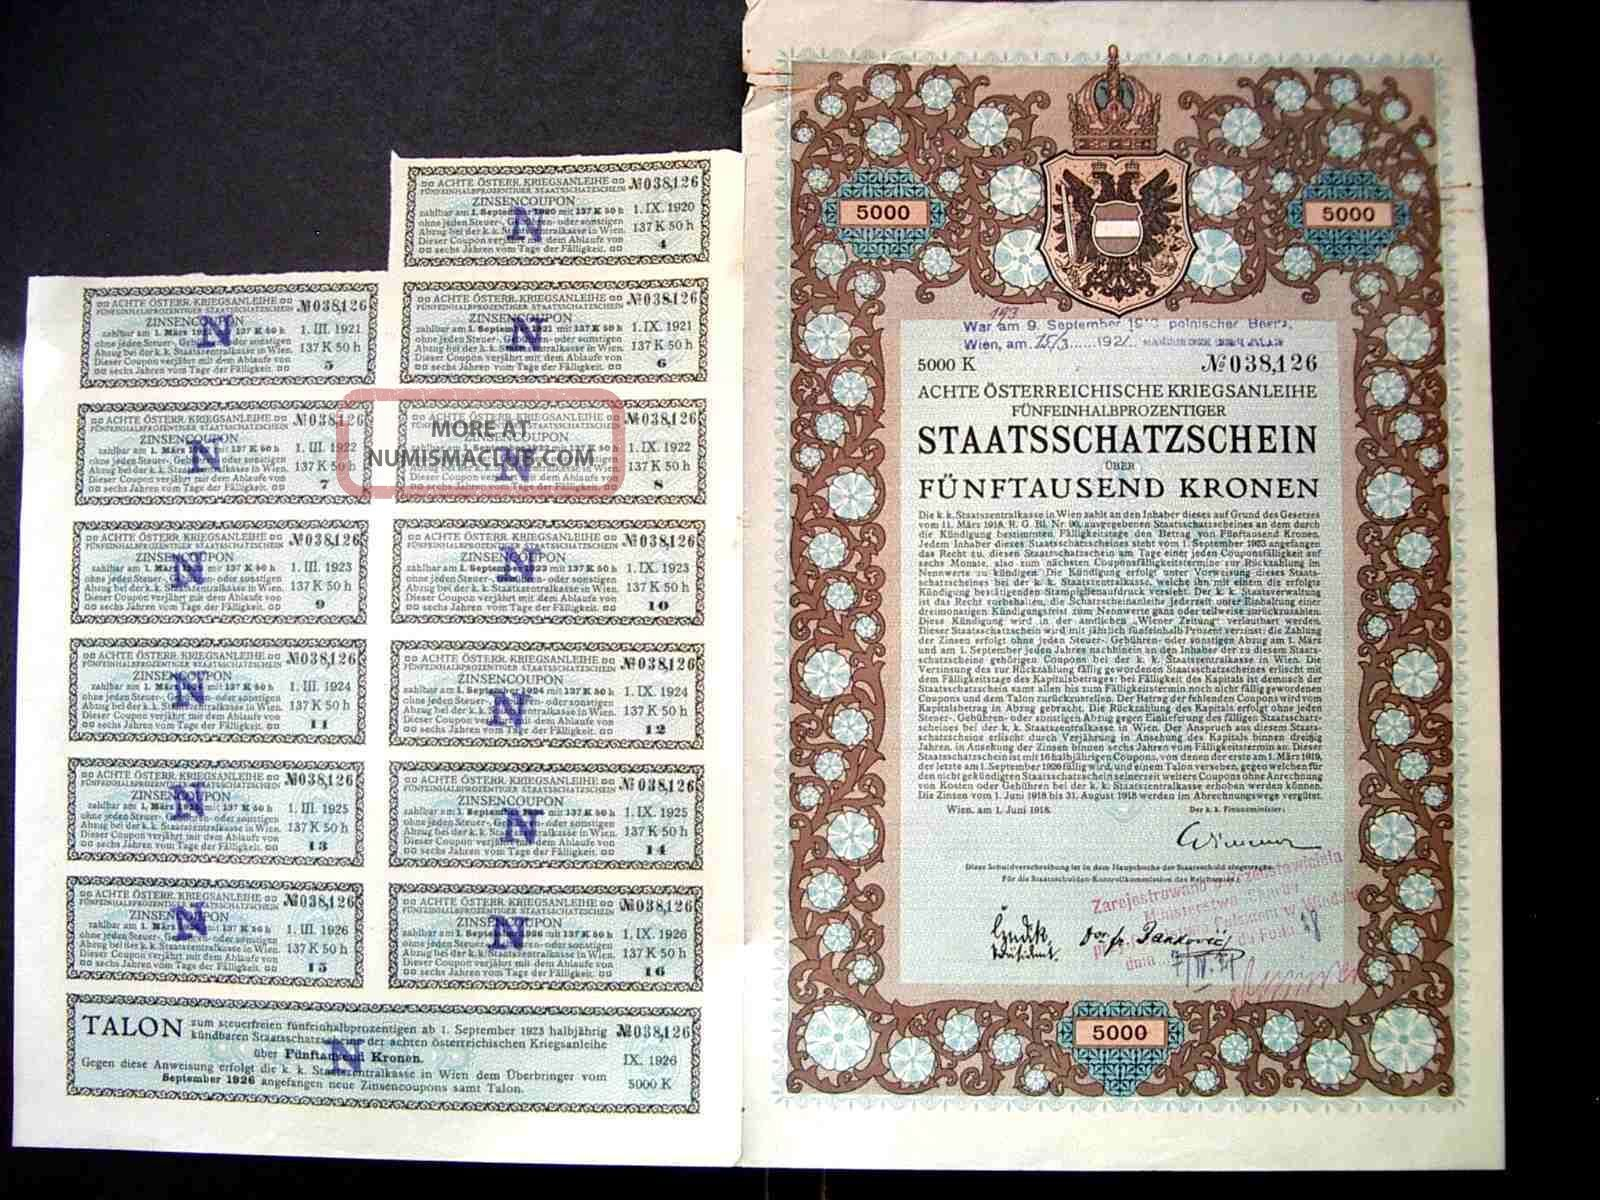 Austria 1915 Wien Staatsschatzschein 5000 Kronen Bond Share Loan Stock Unc World photo